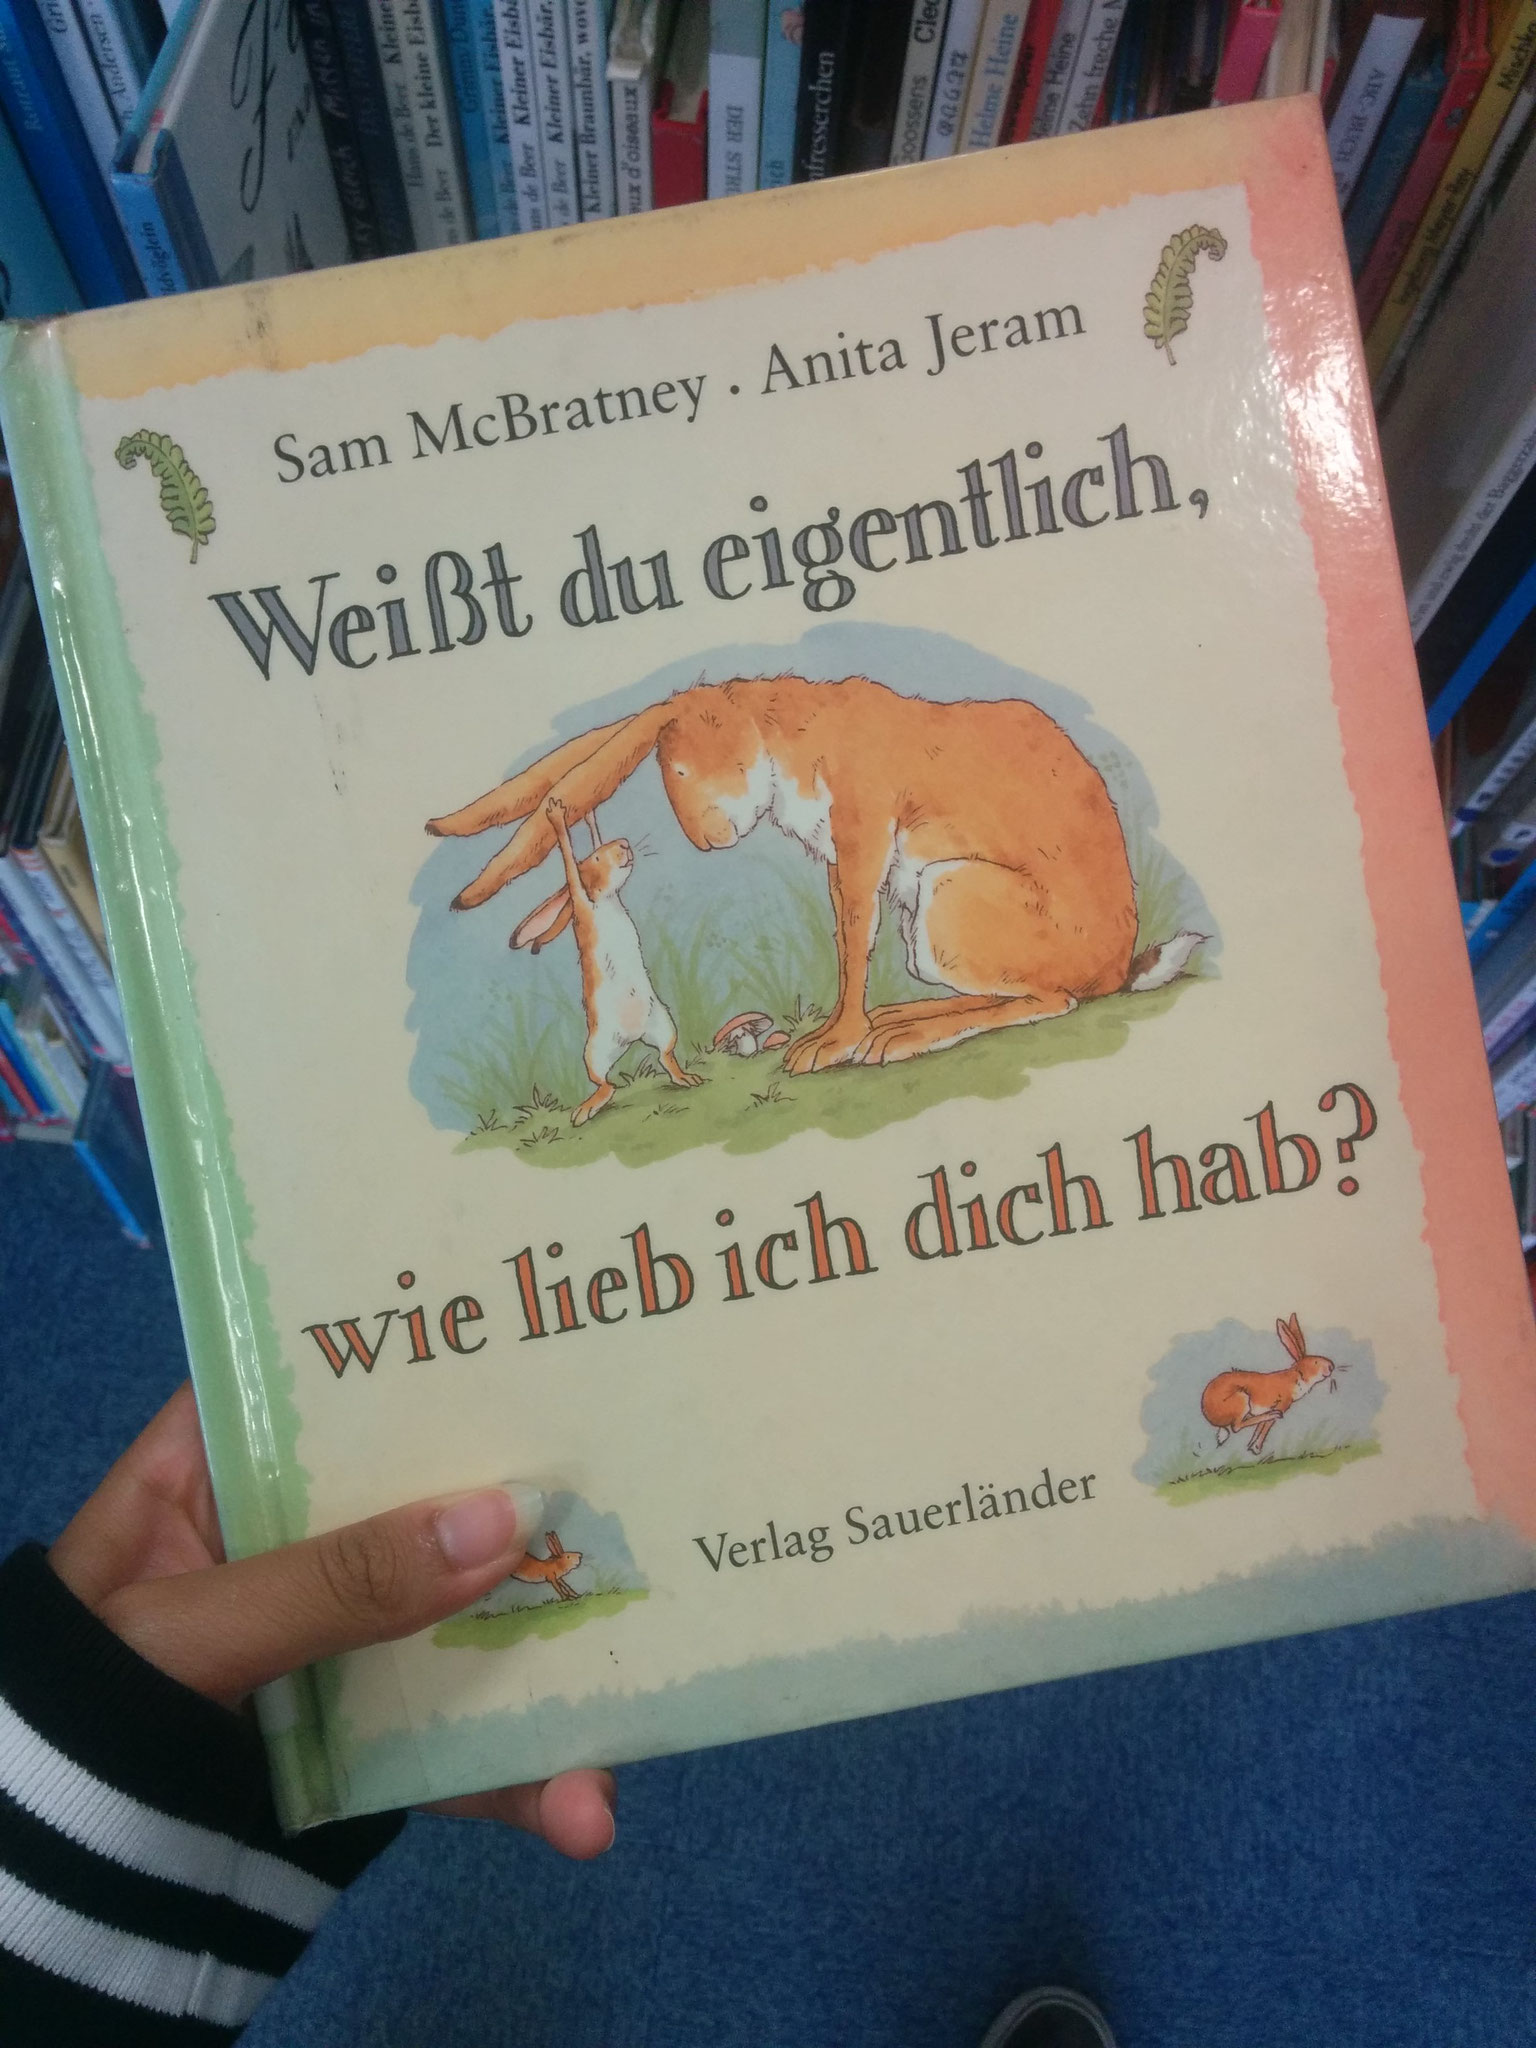 24 In the library there was a section for foreign language kids' books, guess what I found